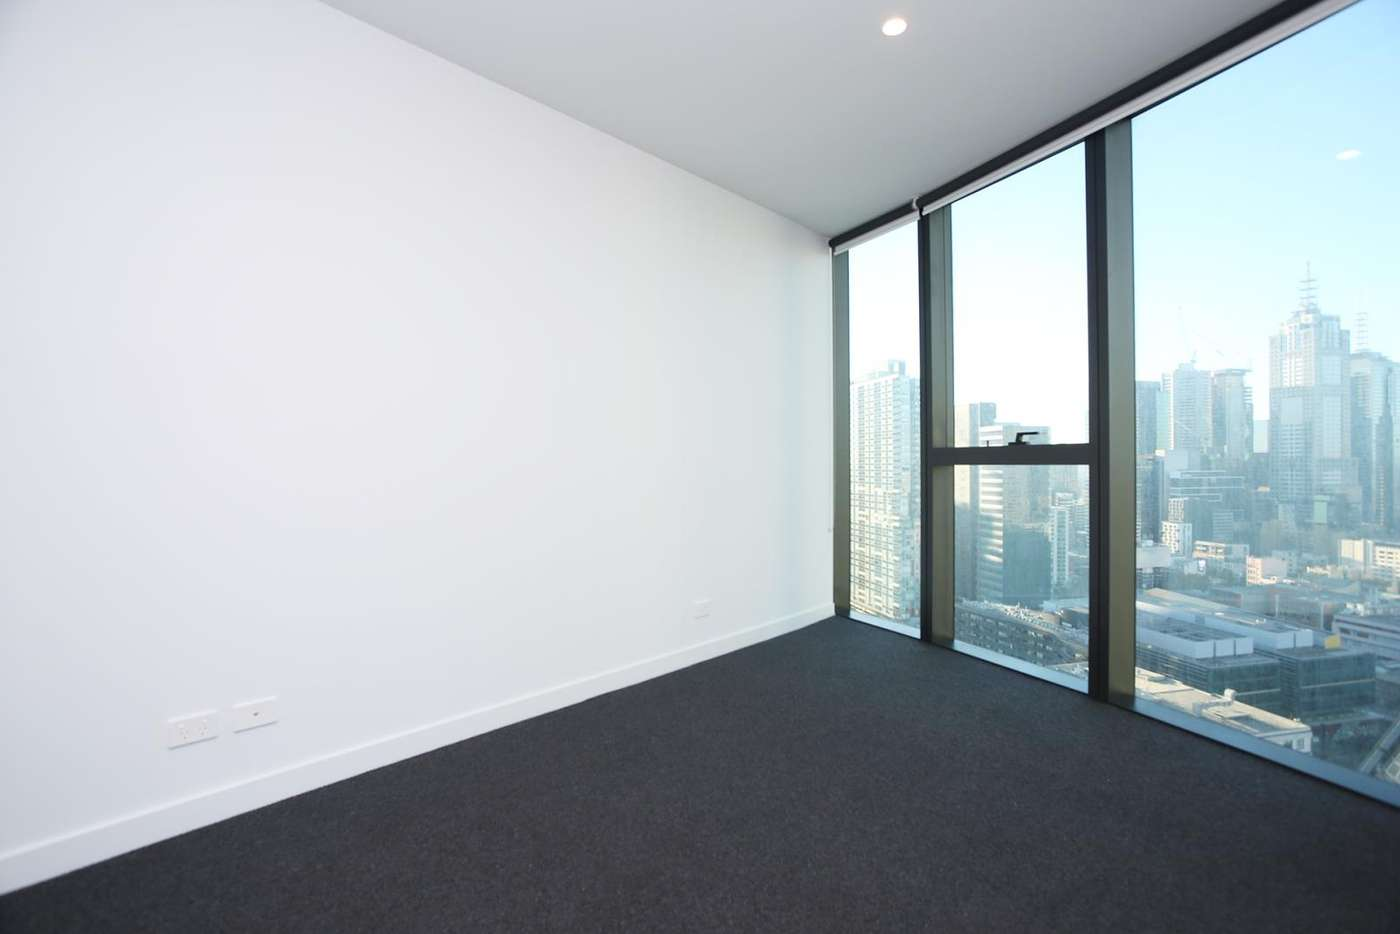 Main view of Homely apartment listing, 3218/228 La Trobe Street, Melbourne VIC 3000